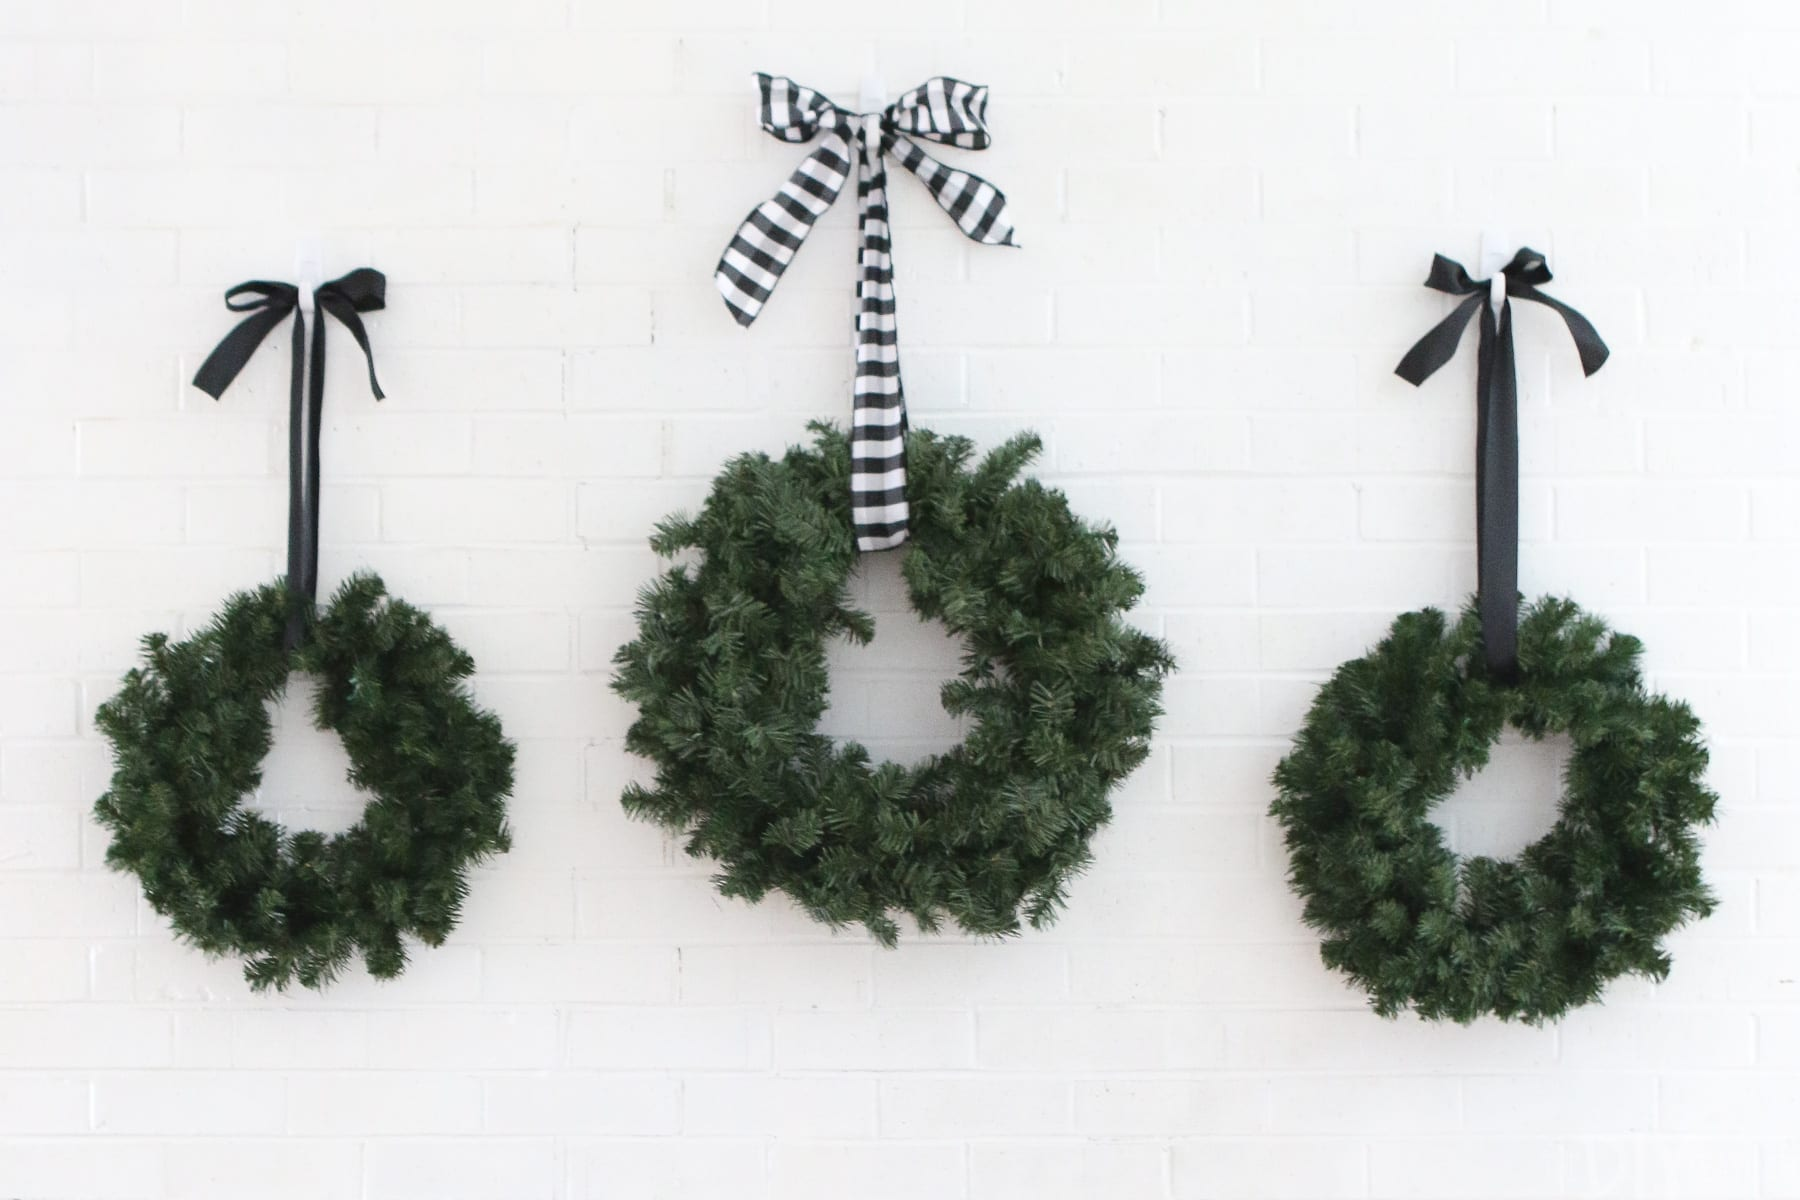 Black and White wreaths were just a bonus! Aren't they cute?